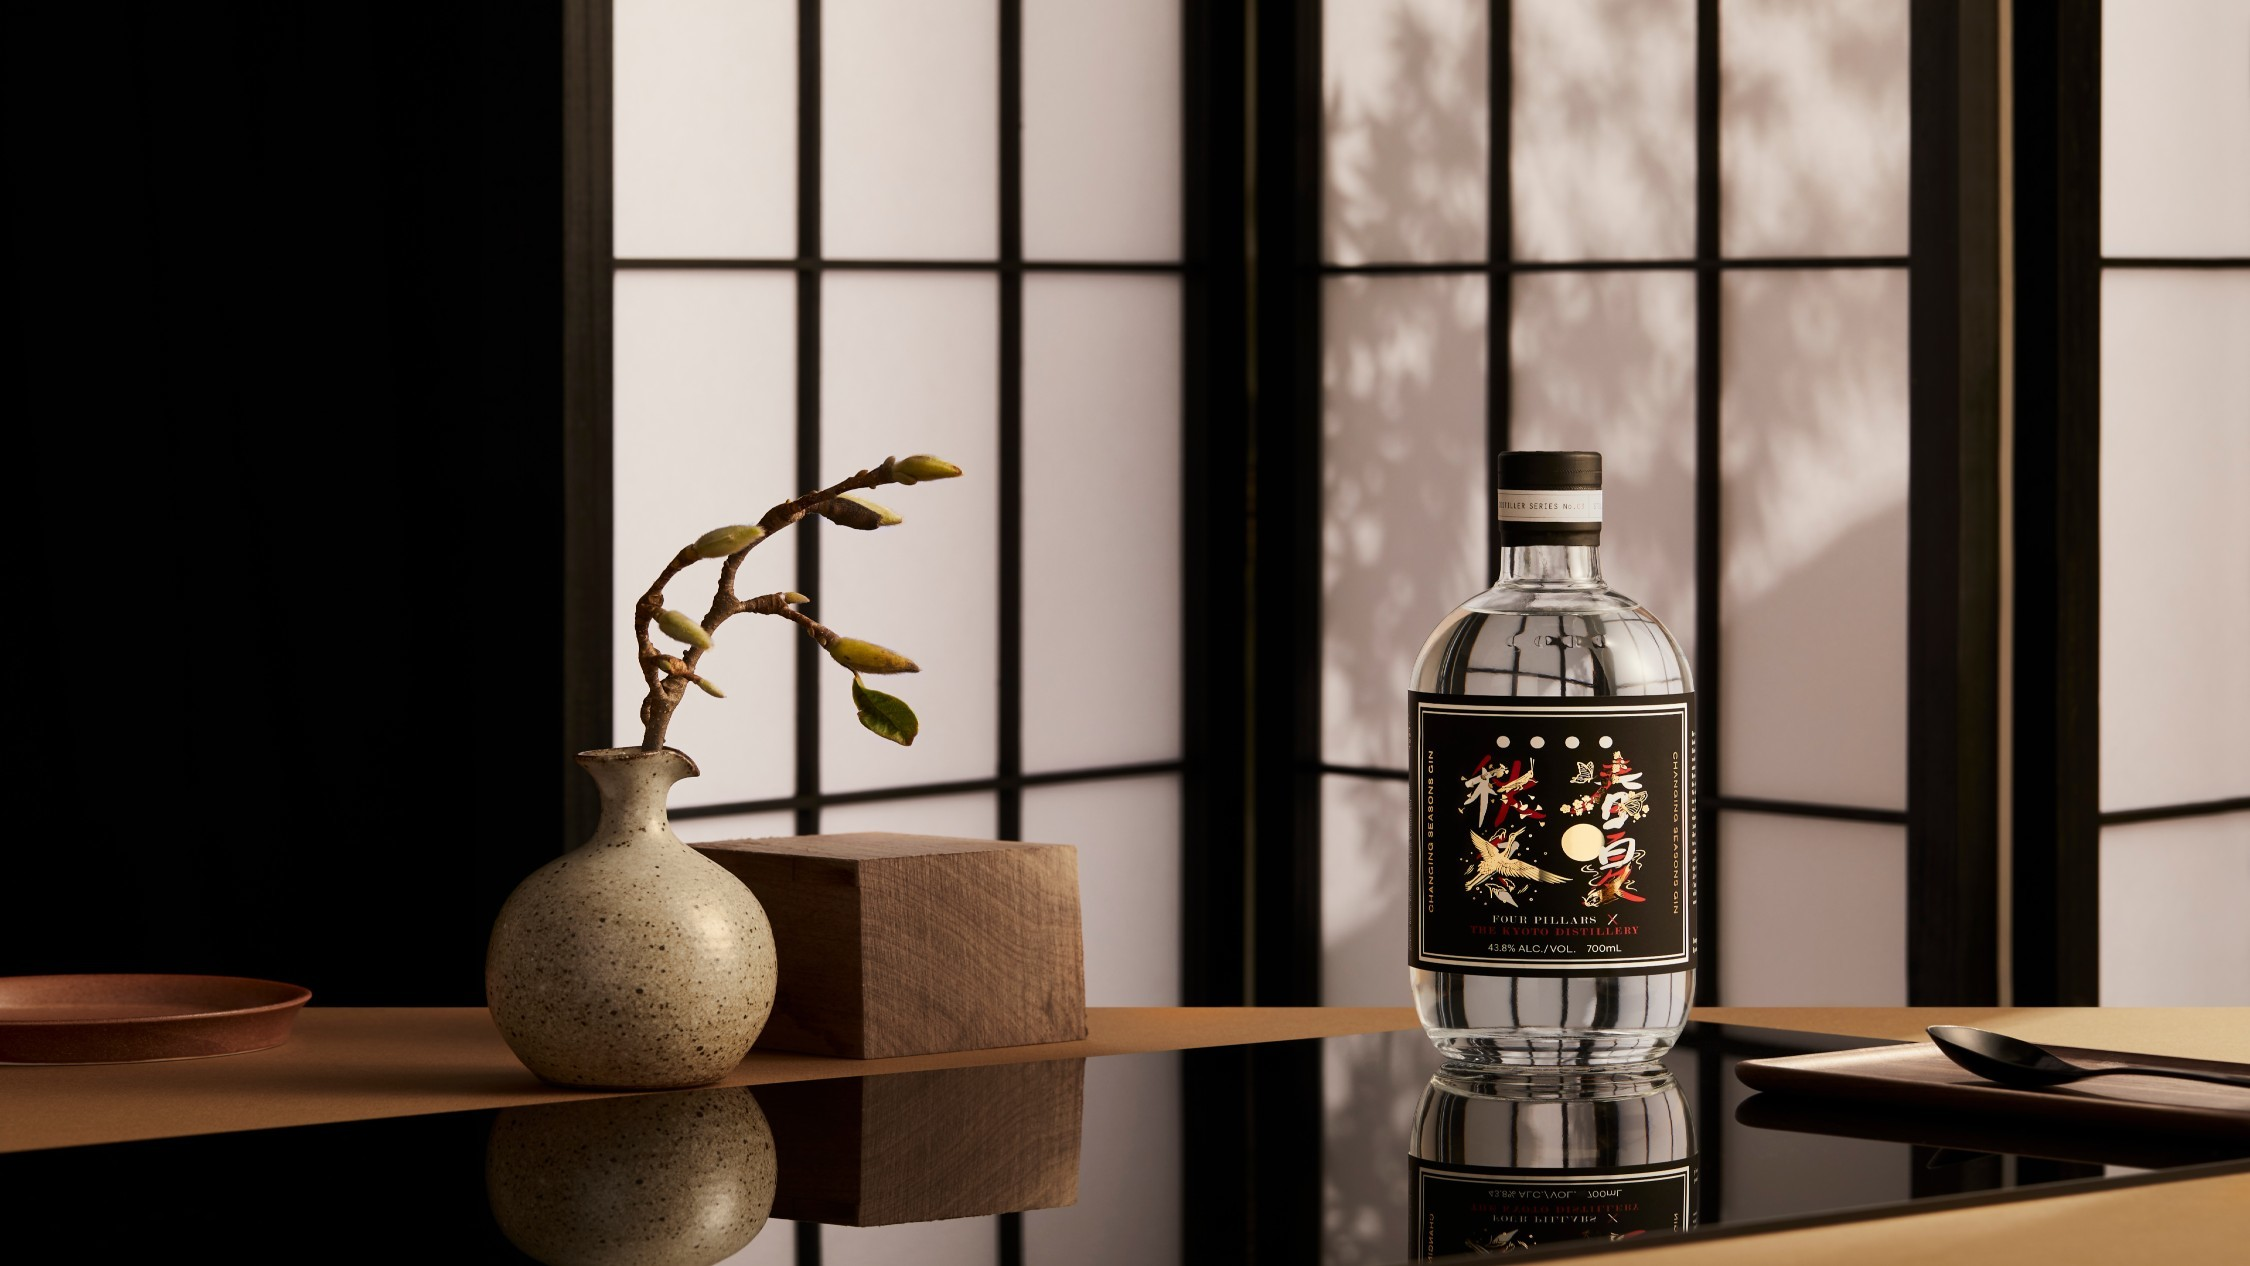 Four Pillars is releasing a fresh, new botanical gin with Japanese flavours